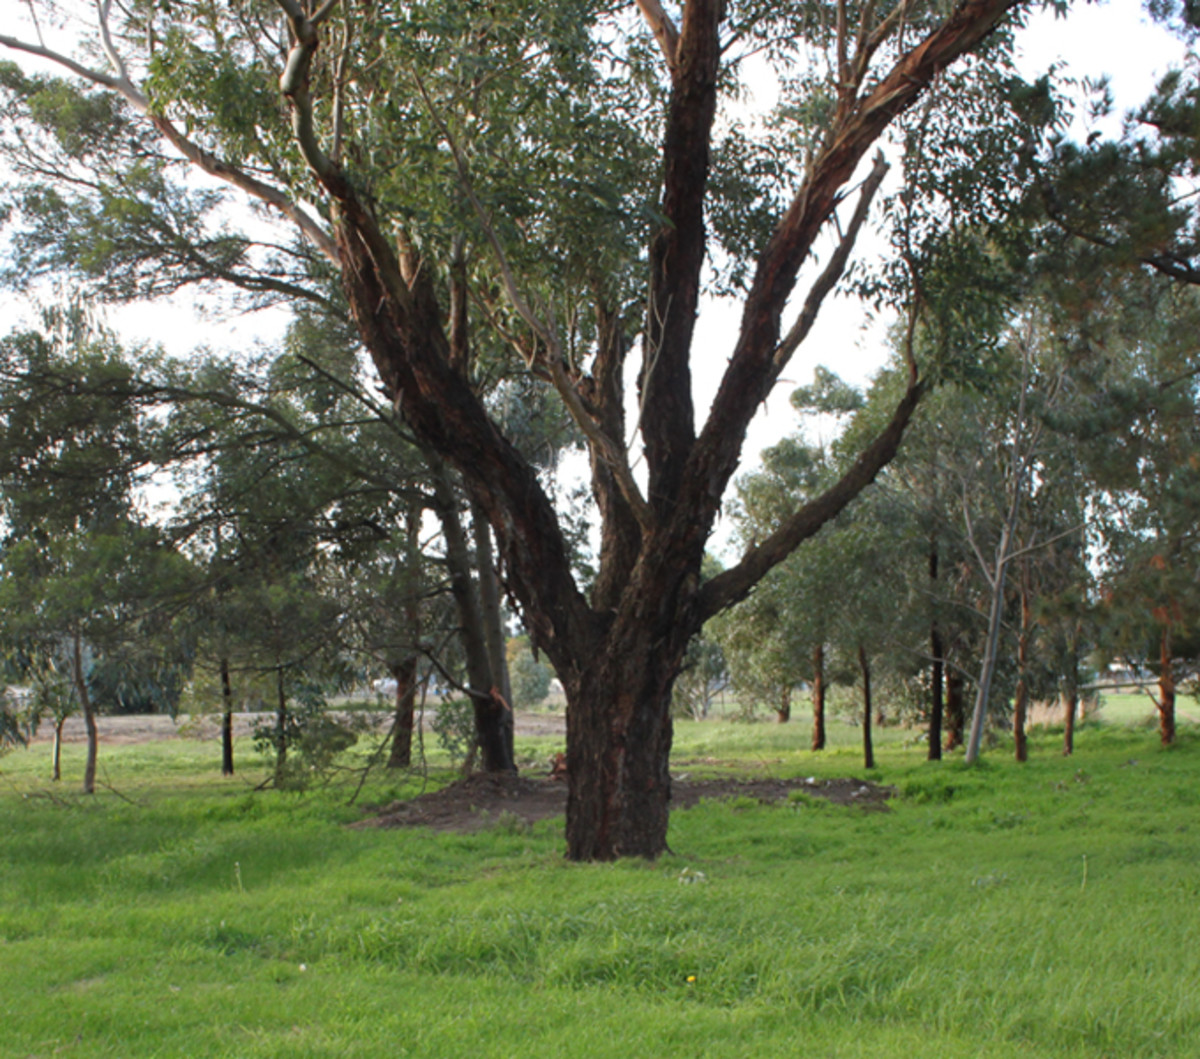 Image taken with the 18-55mm lens set at 18mm (min), from the same place as the tree image below.